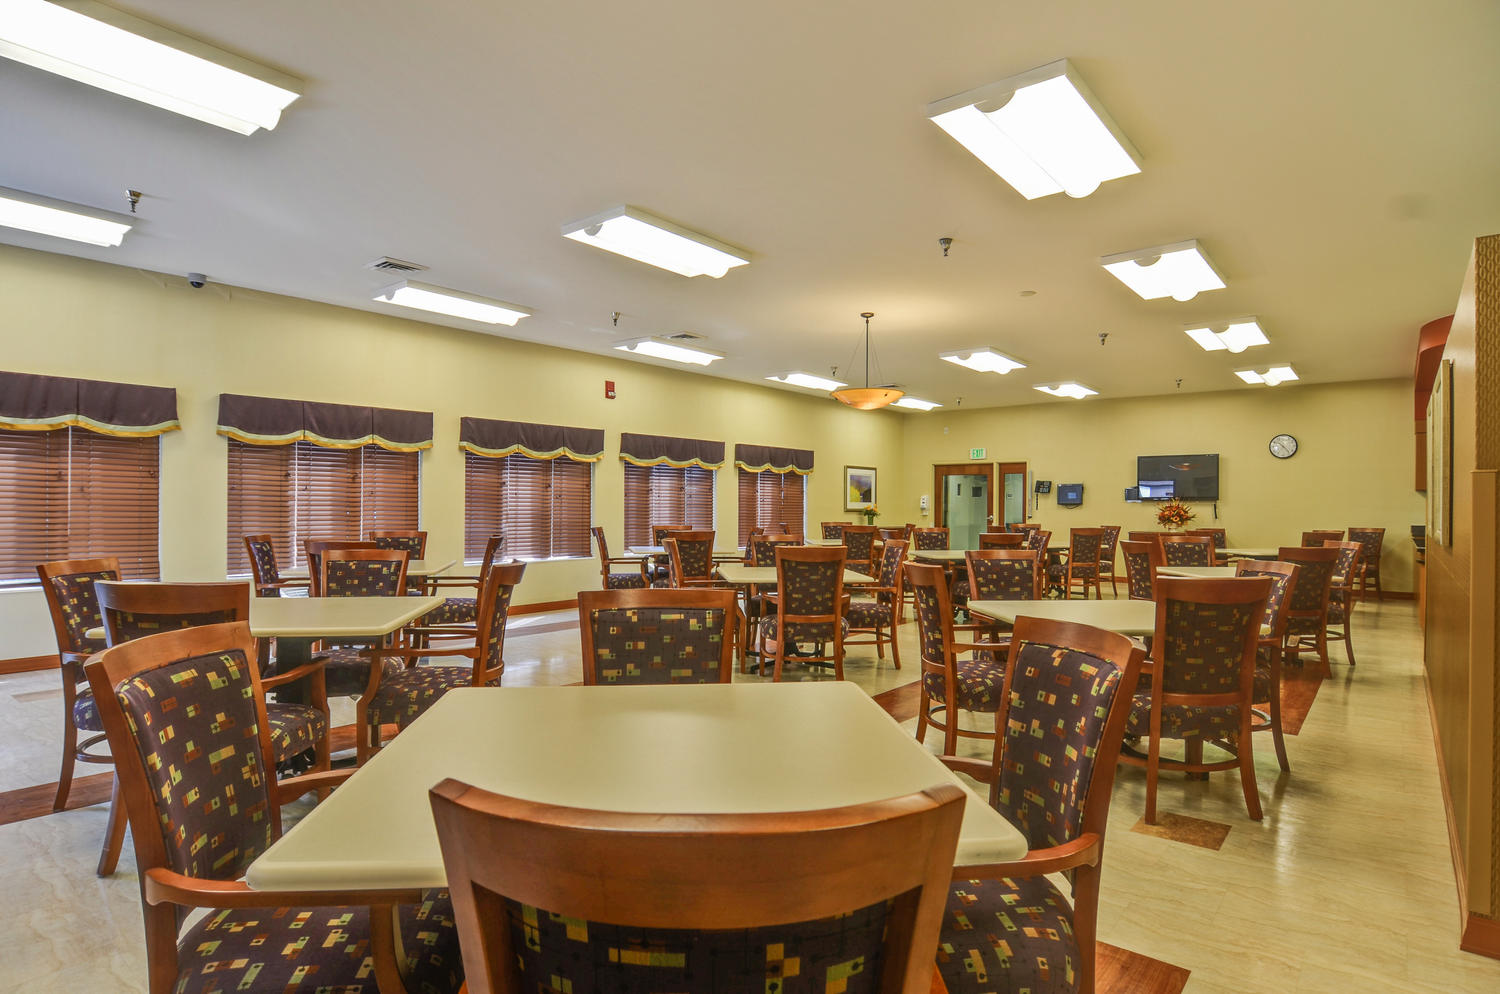 Stonerise Clarksburg dining room with TV, windows and patterned chairs